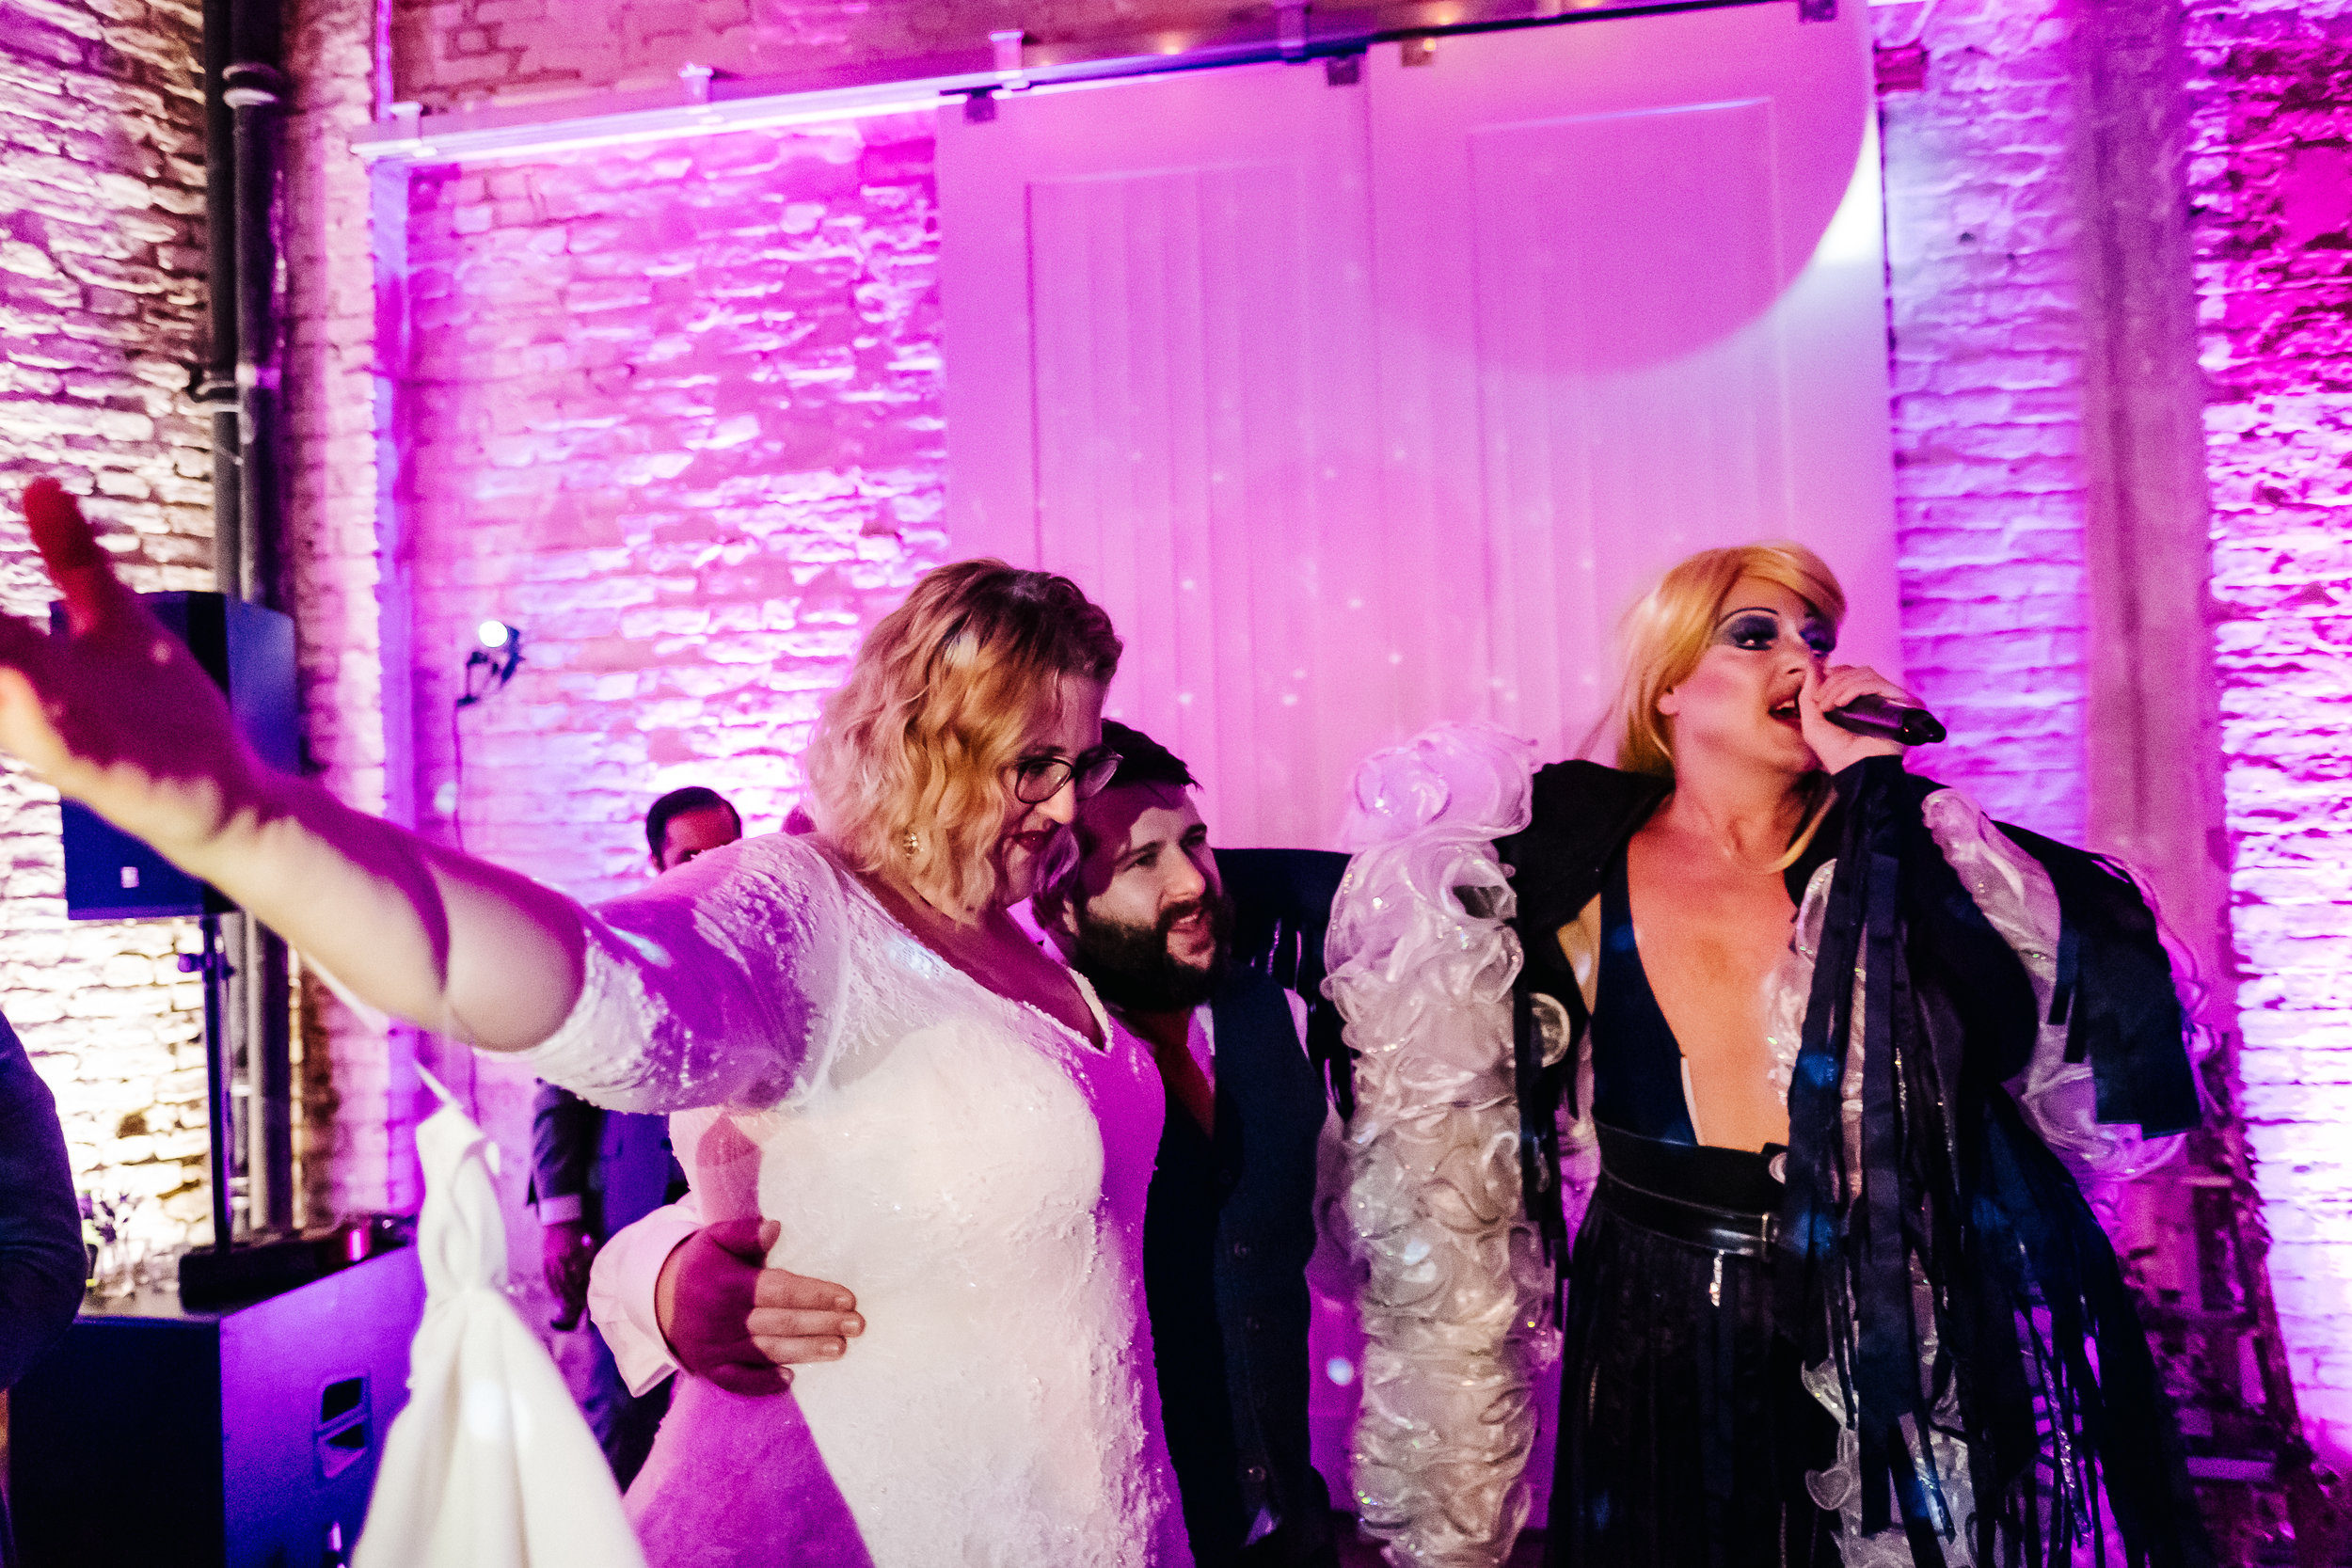 Quirky Venue, Non-traditional wedding planner, London Wedding coordination, Event Bar, Bespoke weddings, Brixton East 1871 Wedding, Airstream, informal, Stylish, Drag Queen